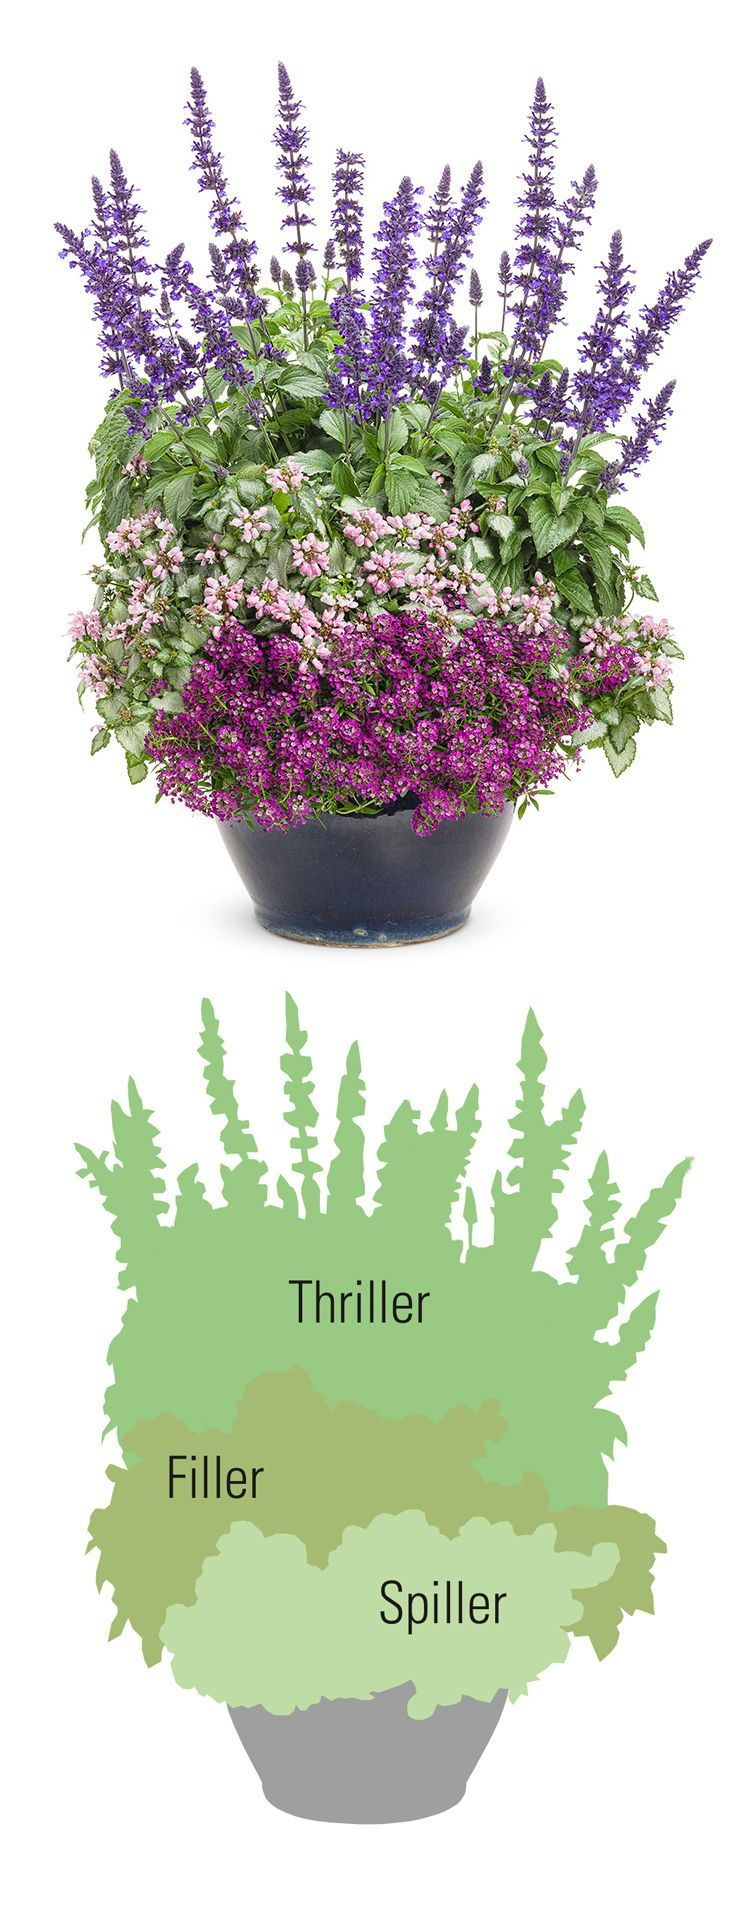 """If you're new to container gardening, here are some helpful terms and tips to help get you up to speed. The """"thriller, filler, spiller"""" method to planting a container is a great designer trick based on plant characteristics like height, mounding, foliage size, and more.If #you're #new #to #container #gardening, #here #are #some #helpful #terms #and #tips #to #help #get #you #up #to #speed. #The #""""thriller, #filler, #spiller"""" #method #to #planting #a #container #is #a #great #designer #trick #bas"""